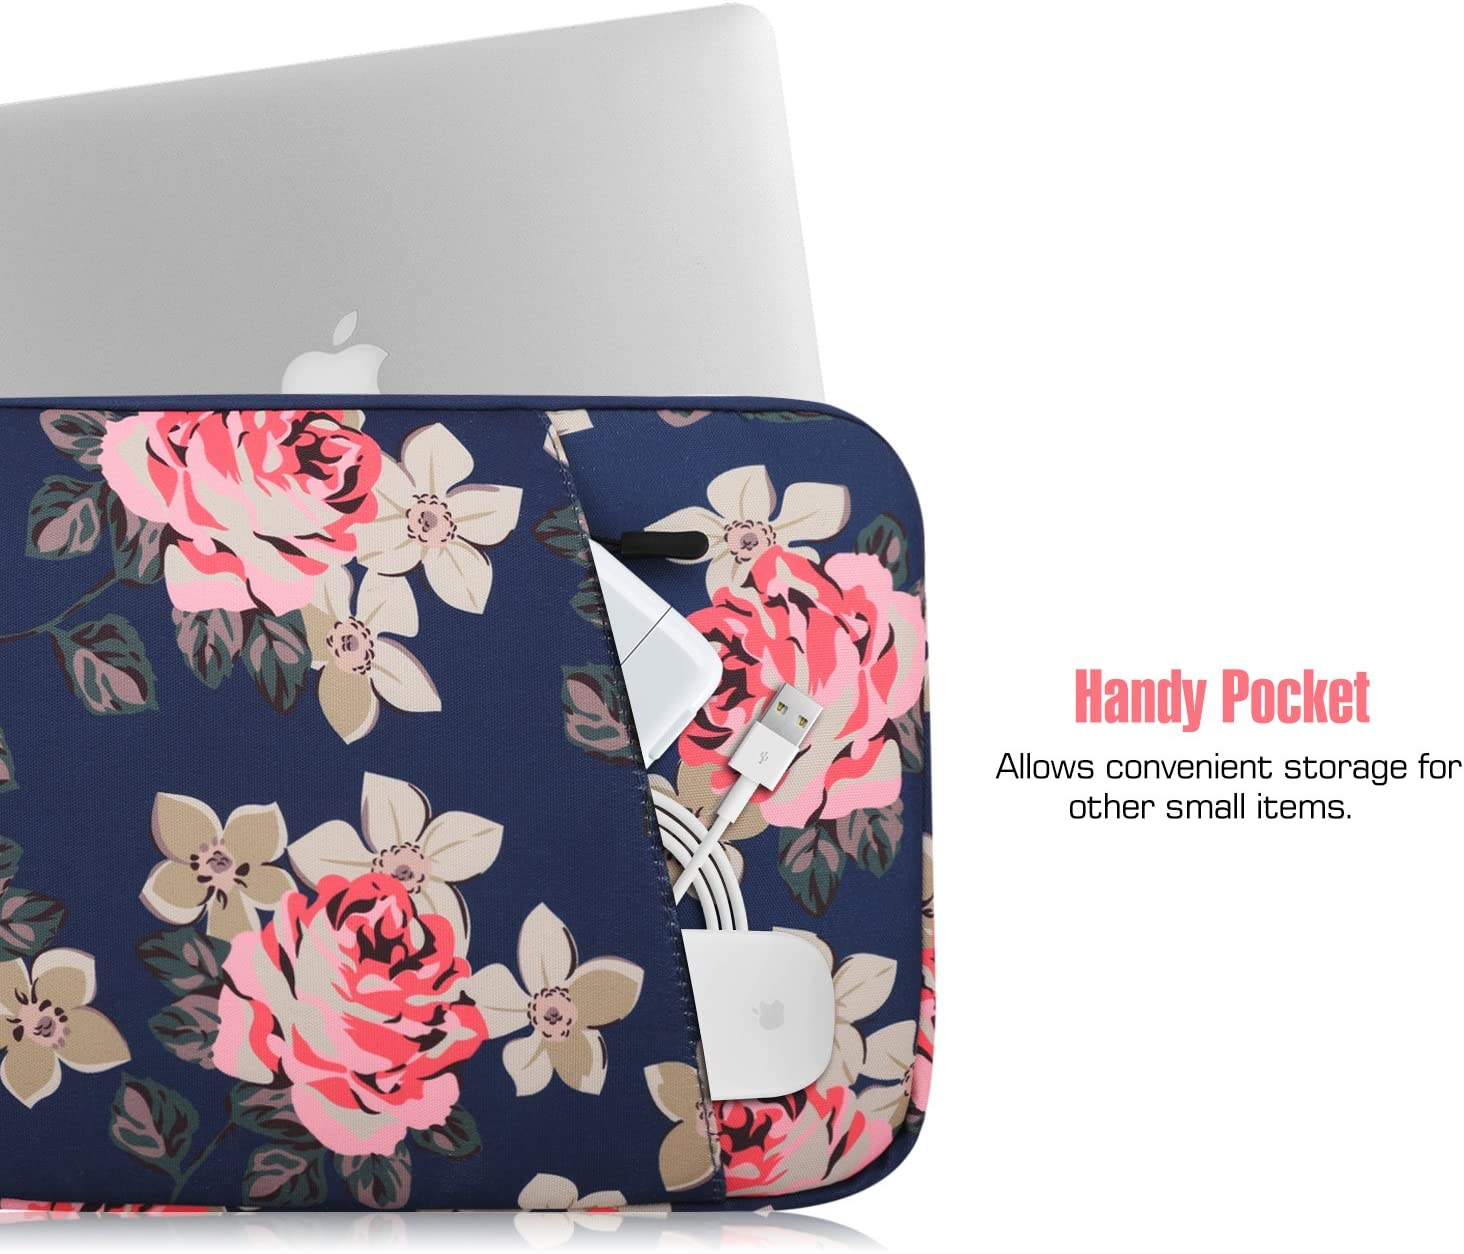 Surface Book//Surface Laptop 13.5 Waterproof Canvas Briefcase Bag Peony MacBook Pro 13 2016-2019 A2159 A1989 A1708 MoKo 13-13.5 Inch Laptop Sleeve Bag Fits MacBook Air 13-inch Retina 2020-2016